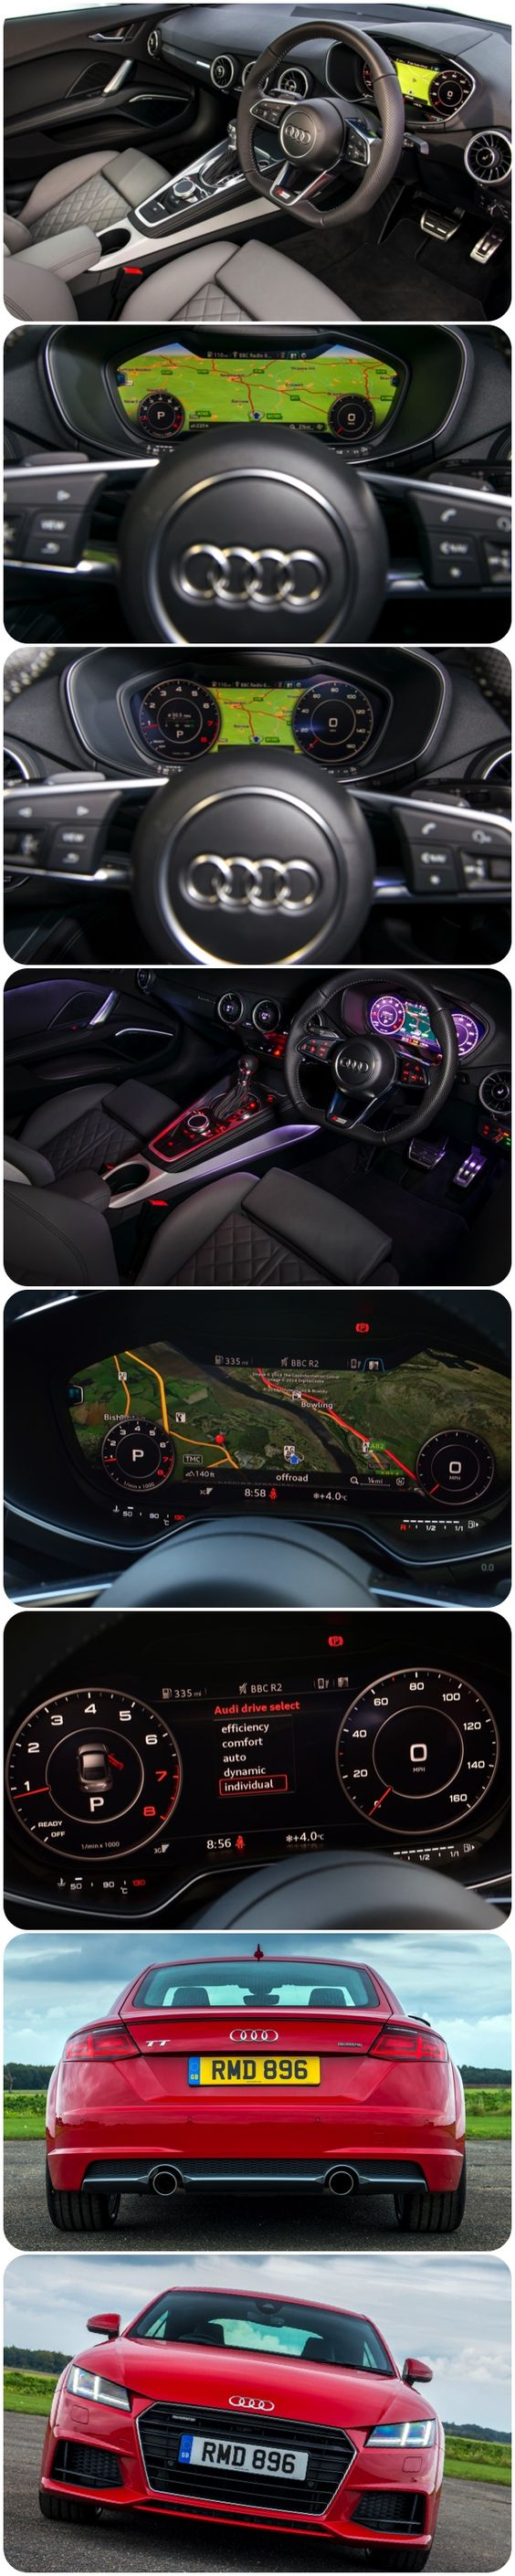 The new virtual cockpit in the New Audi TT.